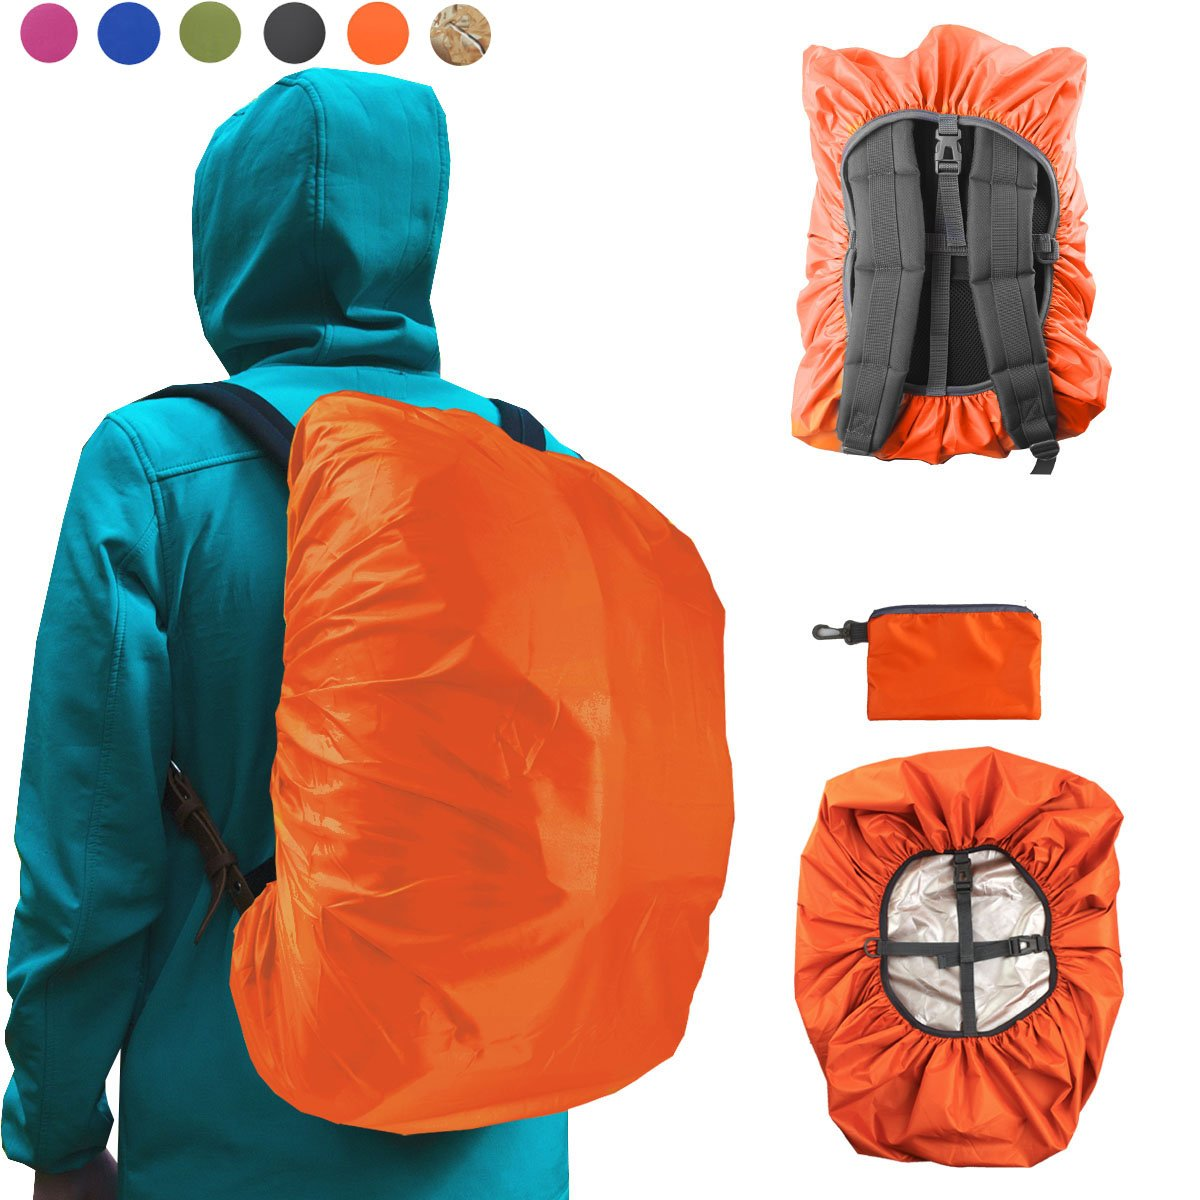 Frelaxy Waterproof Backpack Rain Cover for (15-90L), Upgraded Design & Silver Coated, for Hiking, Camping, Traveling, Outdoor Activities (Orange, M) by Frelaxy